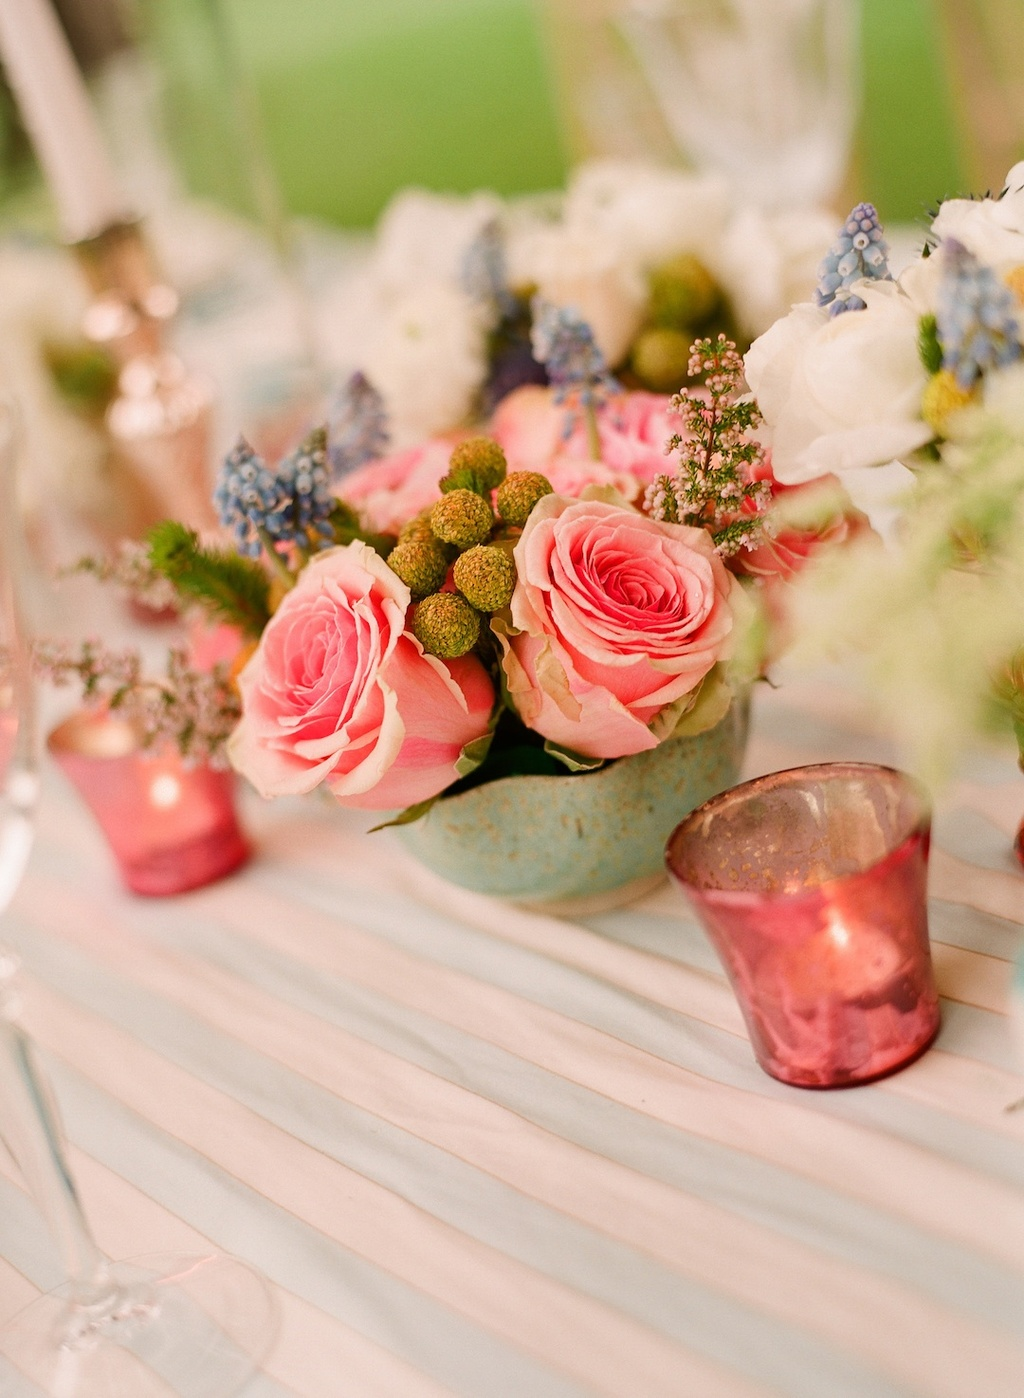 Romantic-wedding-details-outdoor-weddings-light-pink-rose-centerpieces.full